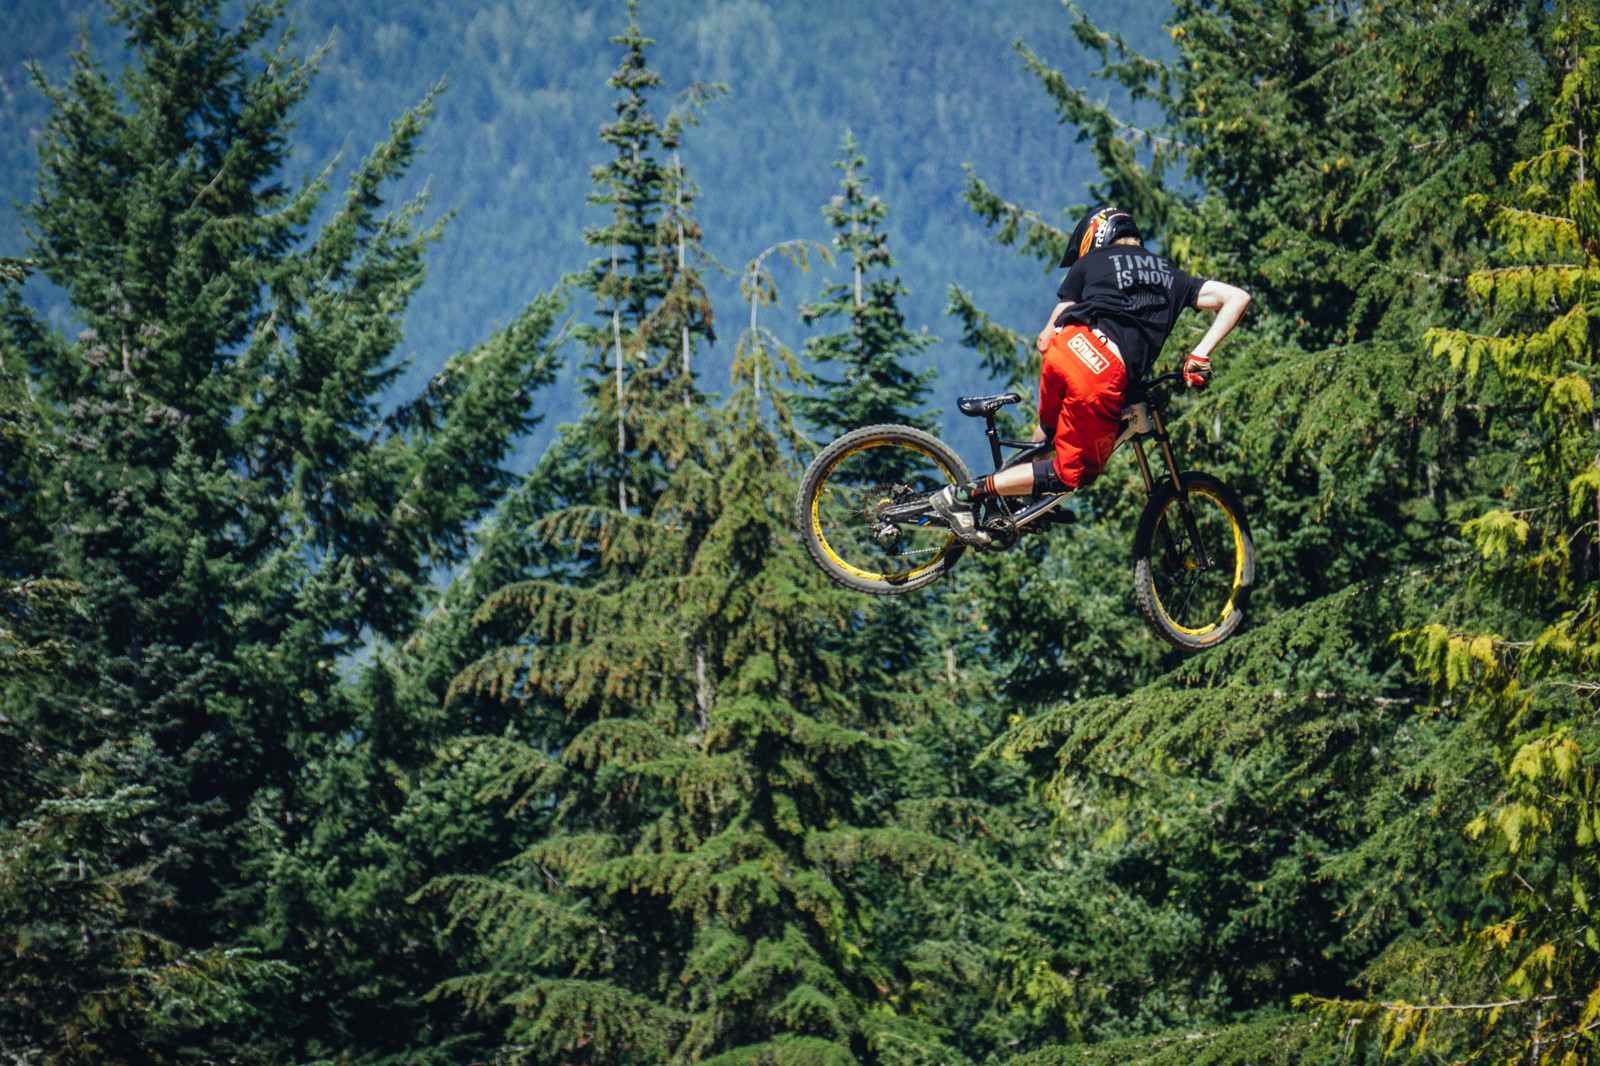 Iven Ebener - Whip Off World Champs Qualifiers - Going for Broke: 14 Super Sideways Senders from Whip Off World Champs Qualifiers - Mountain Biking Pictures - Vital MTB